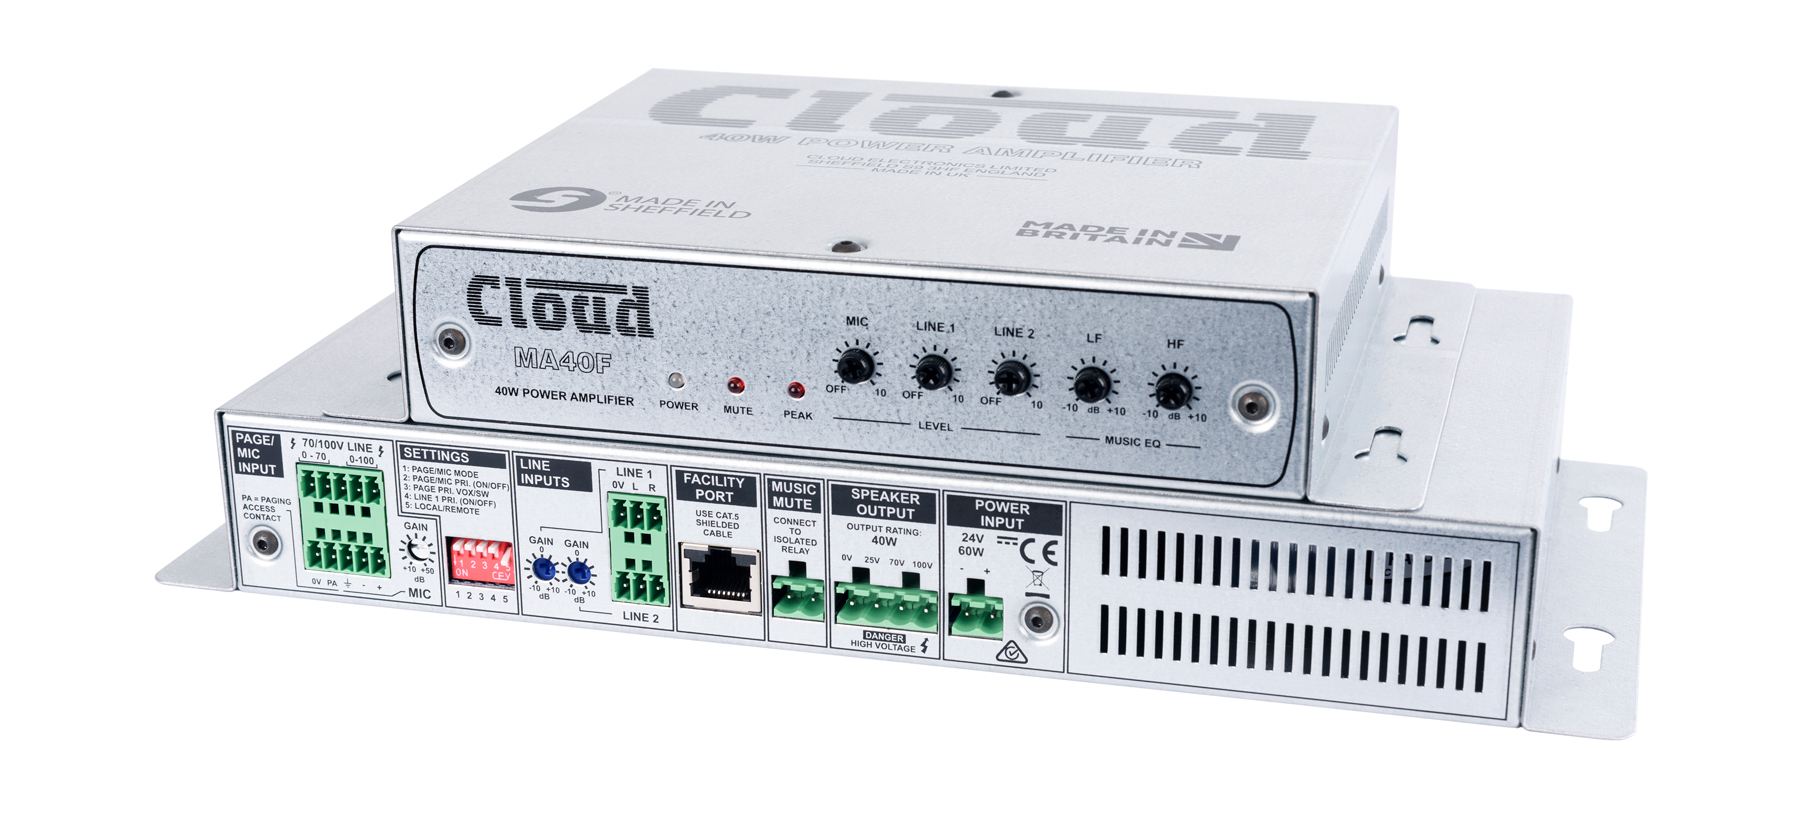 MA40 Series Mini Amplifiers - New Models Shipping from Cloud for ISE 2017